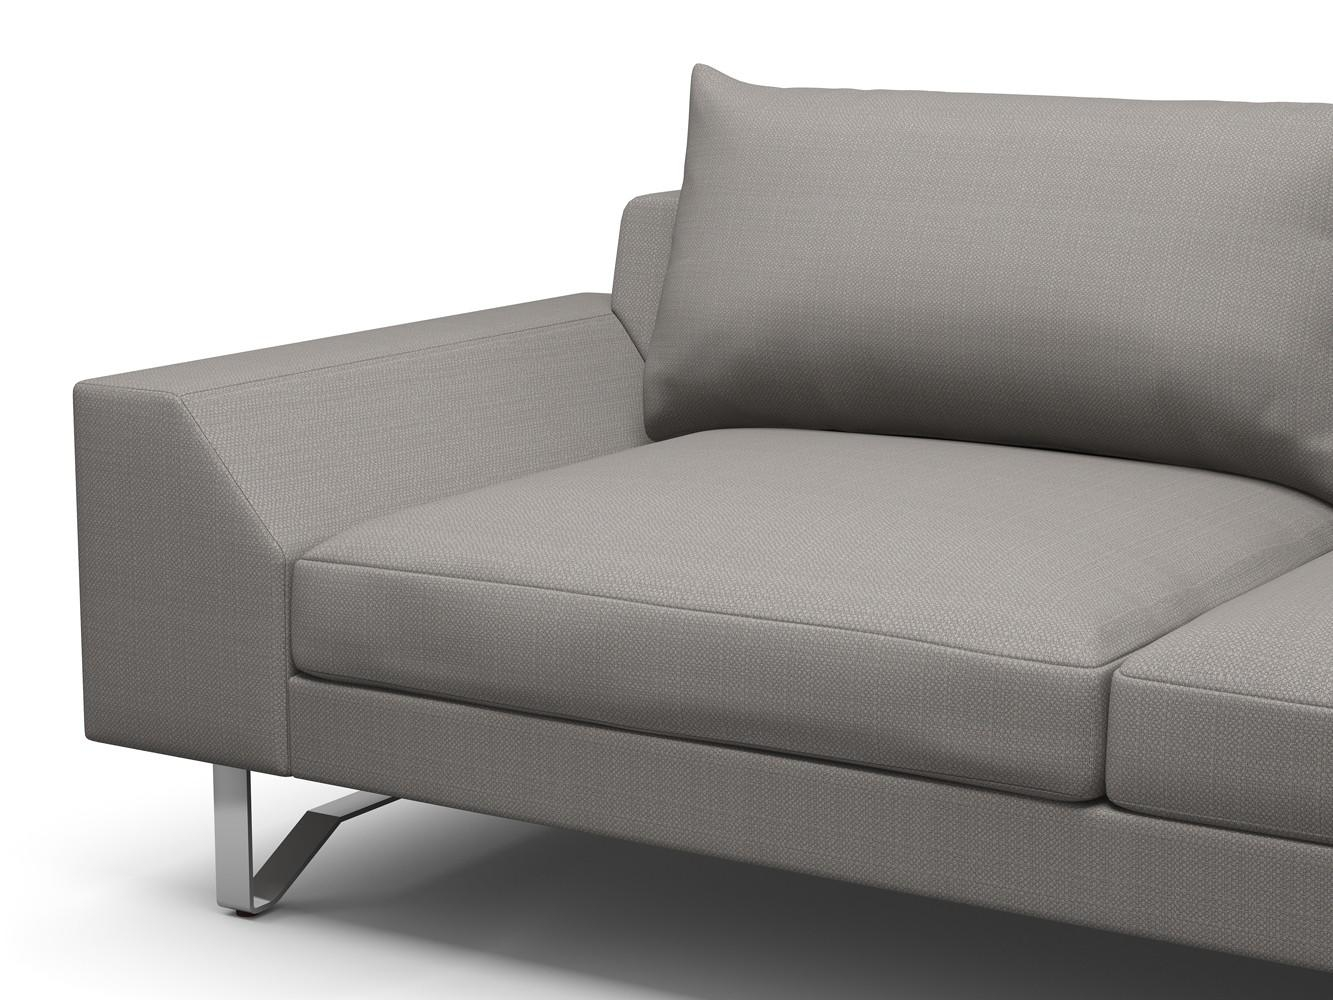 Extra Deep One Cushion Sofa In Tan With Deep Cushion Sofa Image 11 Within One Cushion Sofas (Image 4 of 20)